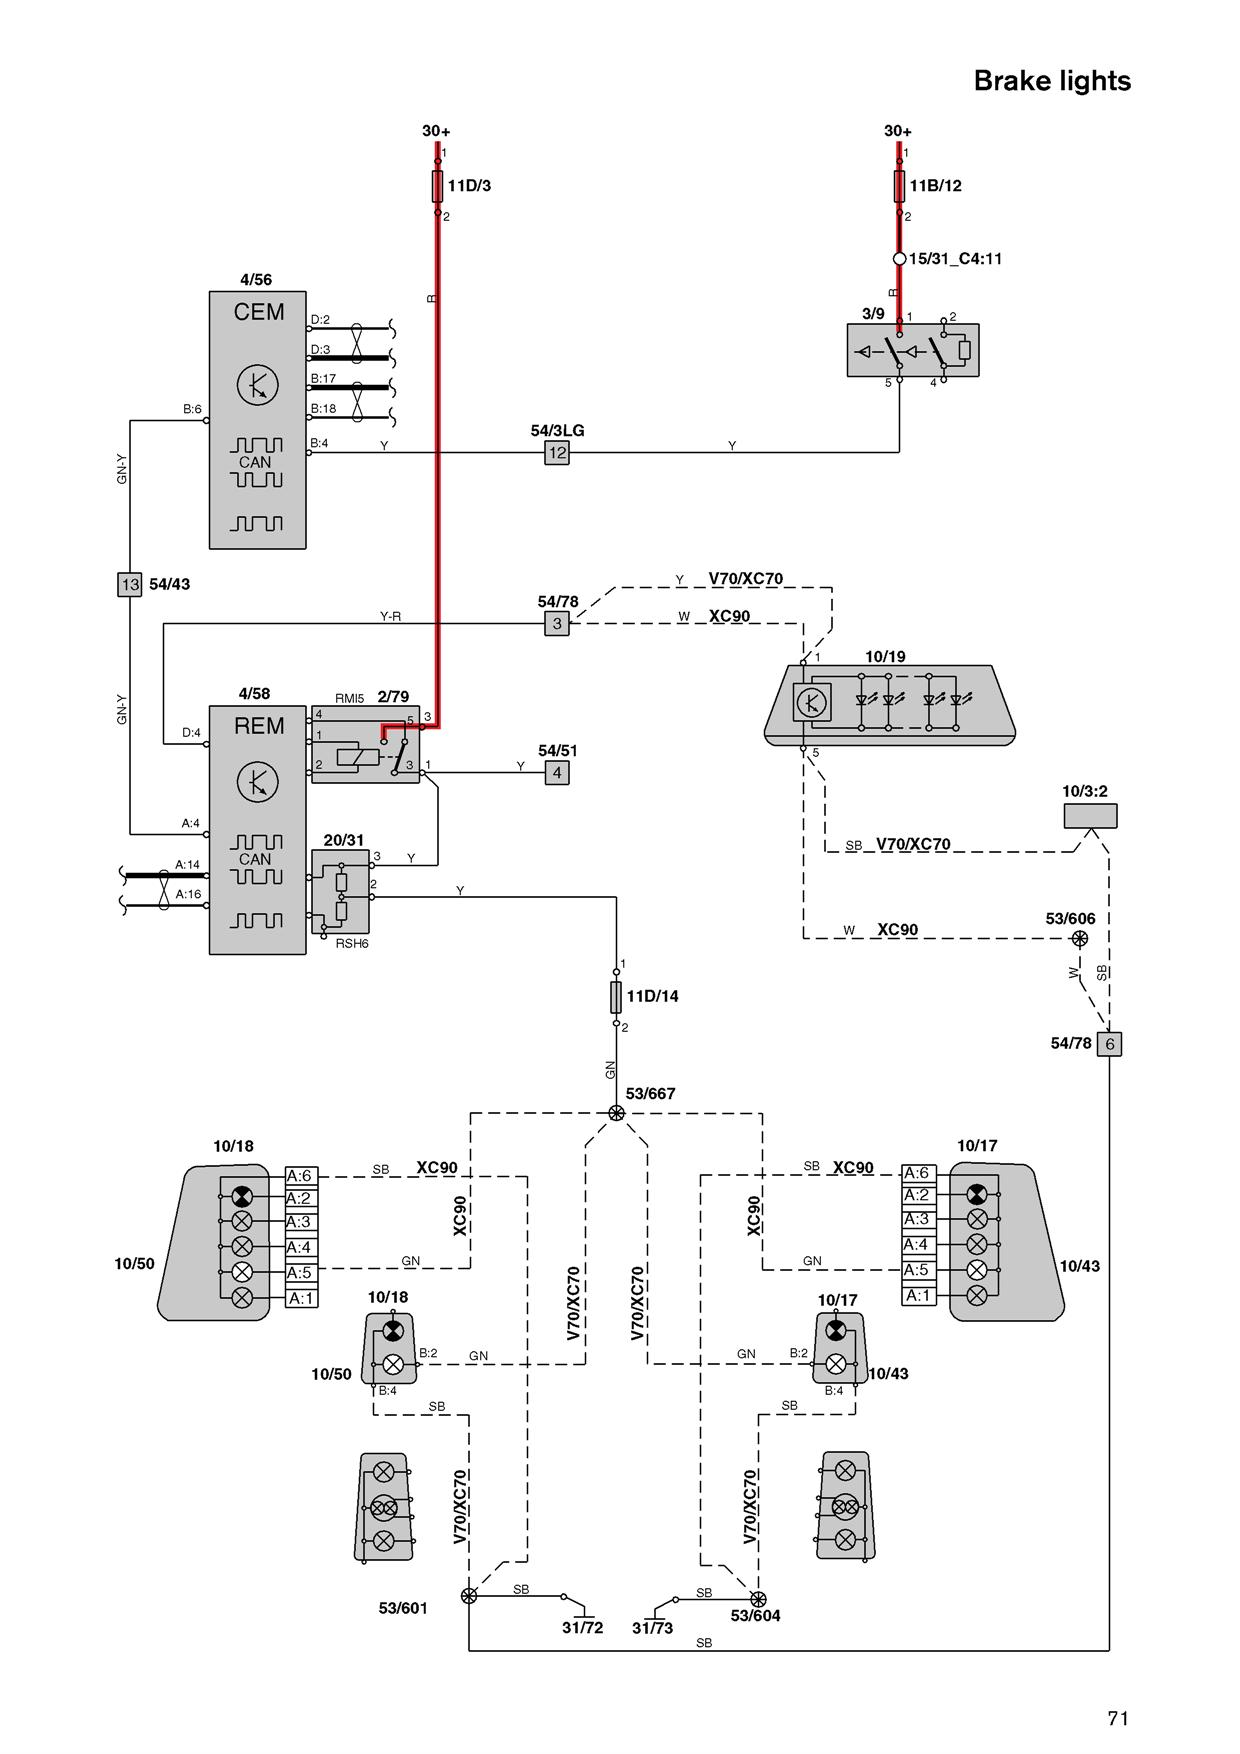 2006 Volvo S80 Fuse Box Wiring Library In Diagram For S60 On 1999